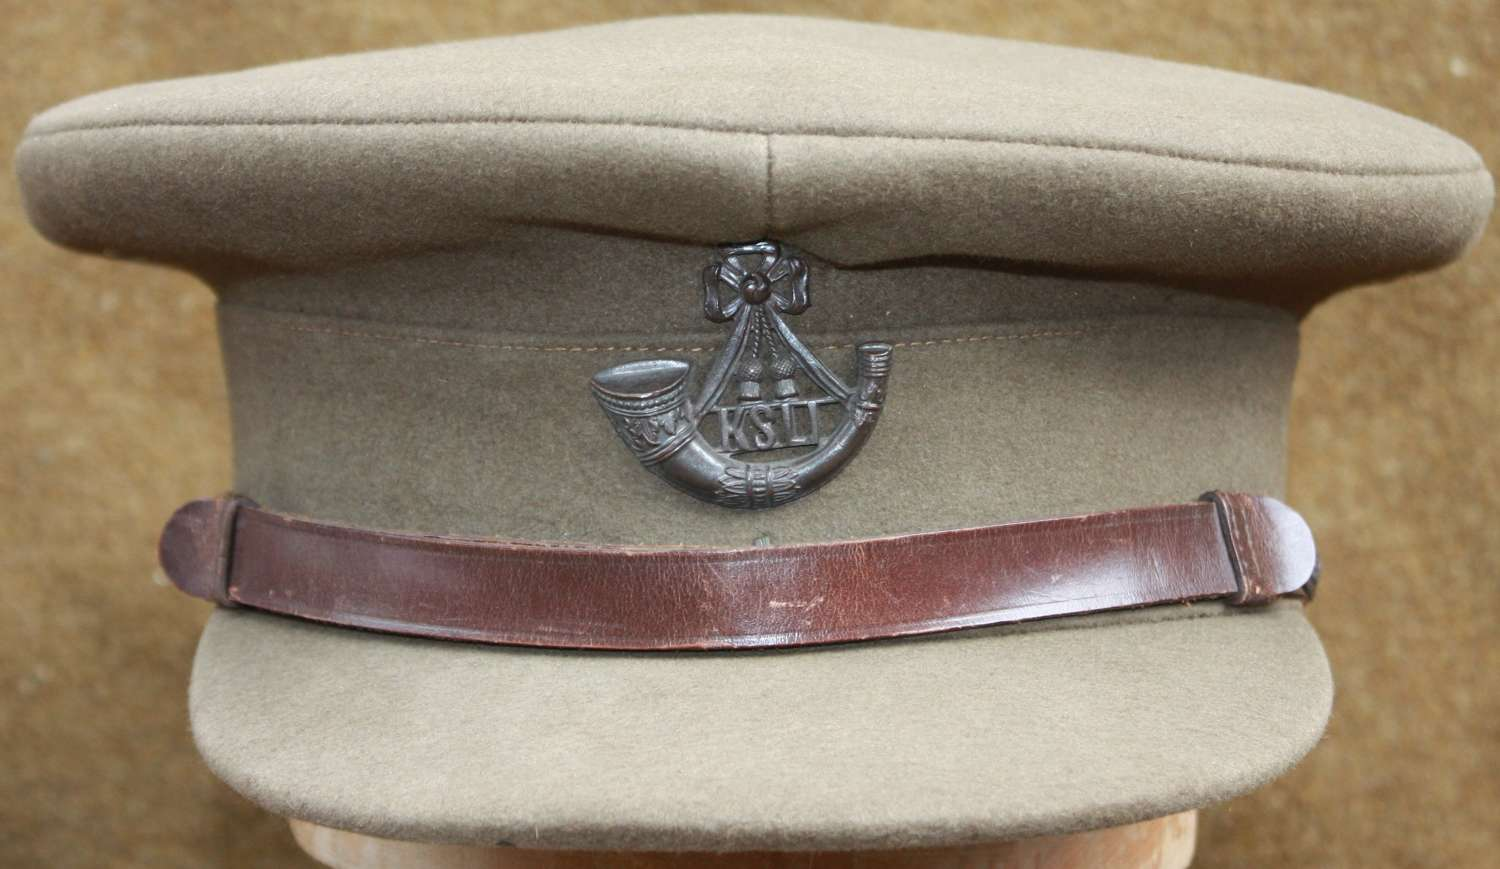 A VERY NICE INTER WAR MID 1930'S KSLI OFFICERS CAP LARGE SIZE